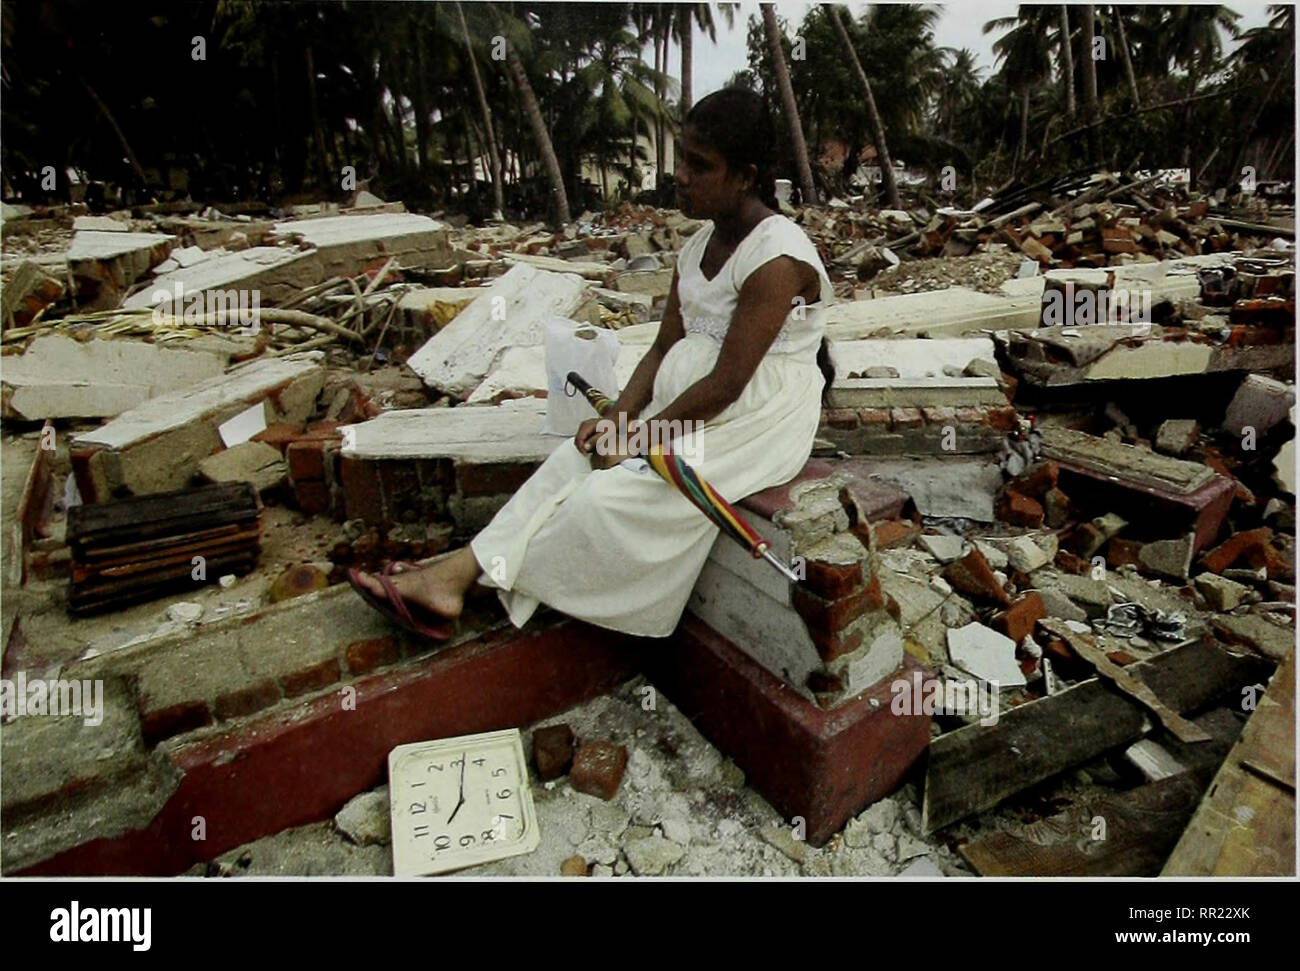 . After the Tsunami: Rapid Environmental Assessment. . Seenigama, Sri Lanka (26 January 2005). A Sri Lankan woman sits among the rubble of her house destroyed by the tsunami as aid workers heip clear debris at Seenigama Village, some 90 kilometres south of the Sri Lankan capital Colombo. © Prakash Singh/AFP/Getty Images to measures to relieve hardship such as confirmation that the salaries of civil servants killed in the disaster would continue to be paid to what would have been their retirement age and full pension rights guaranteed thereafter. The donor community and government reacted quick - Stock Image